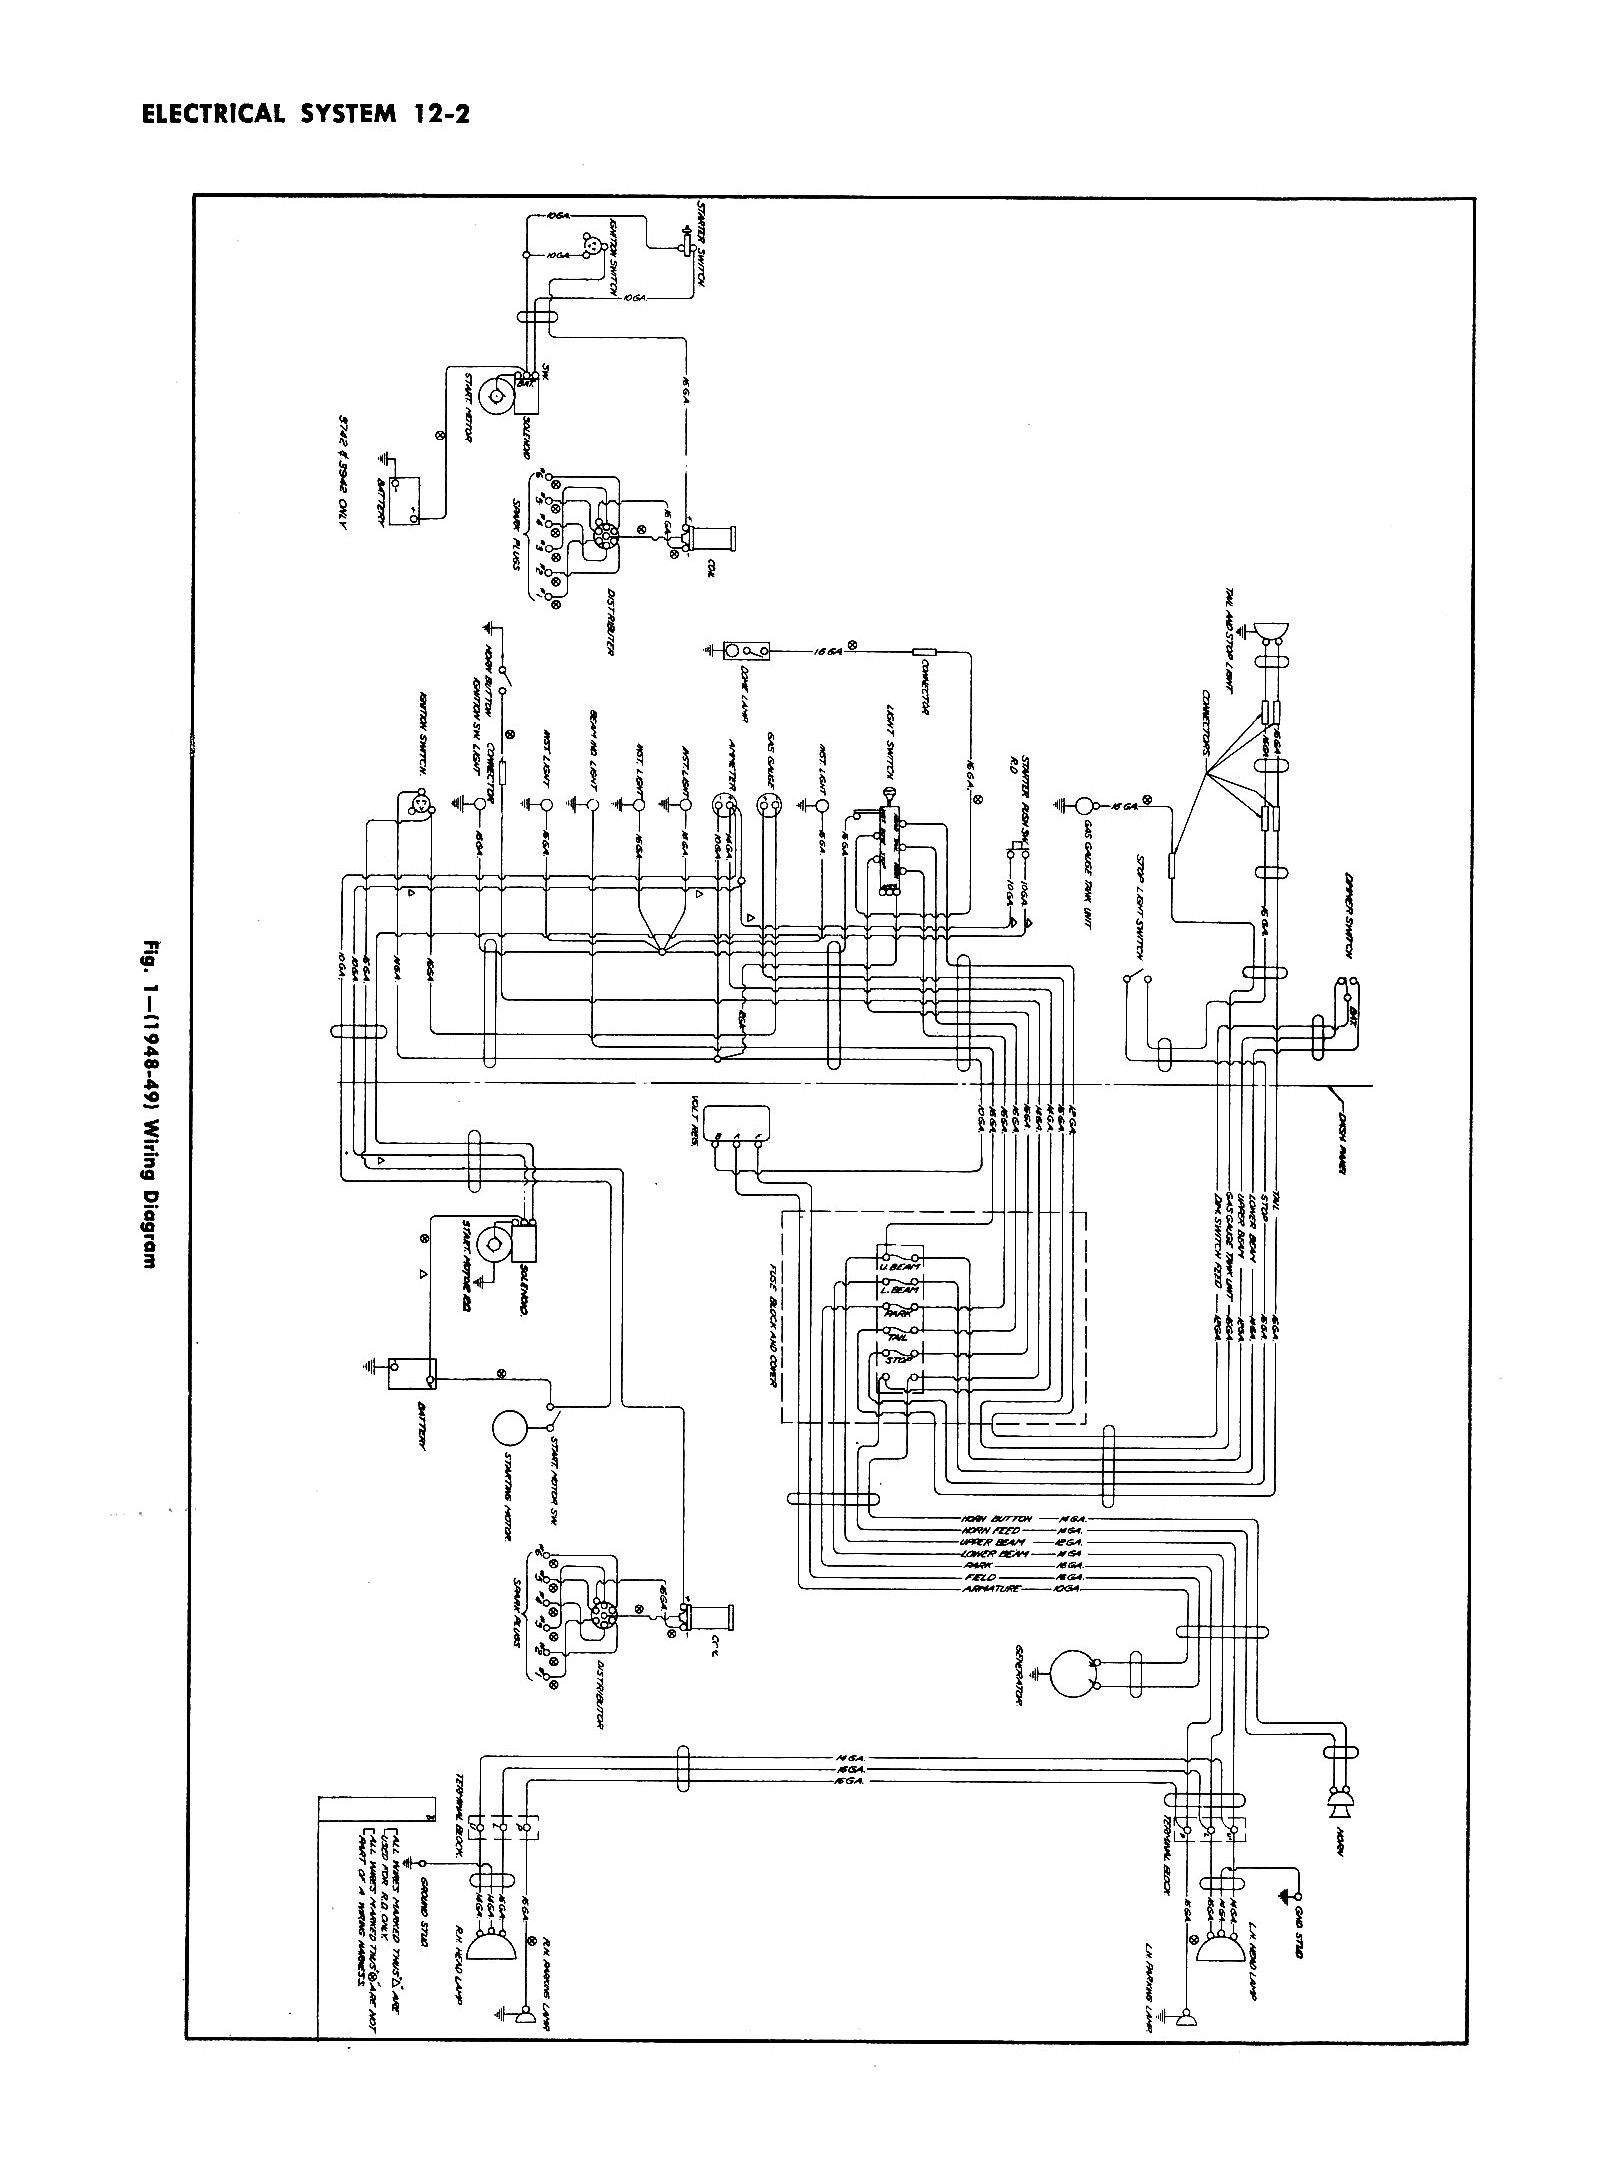 1992 Gm Headlight Switch Wiring Diagram Real 1950 Gmc Schematics Rh Mychampagnedaze Com Chevy